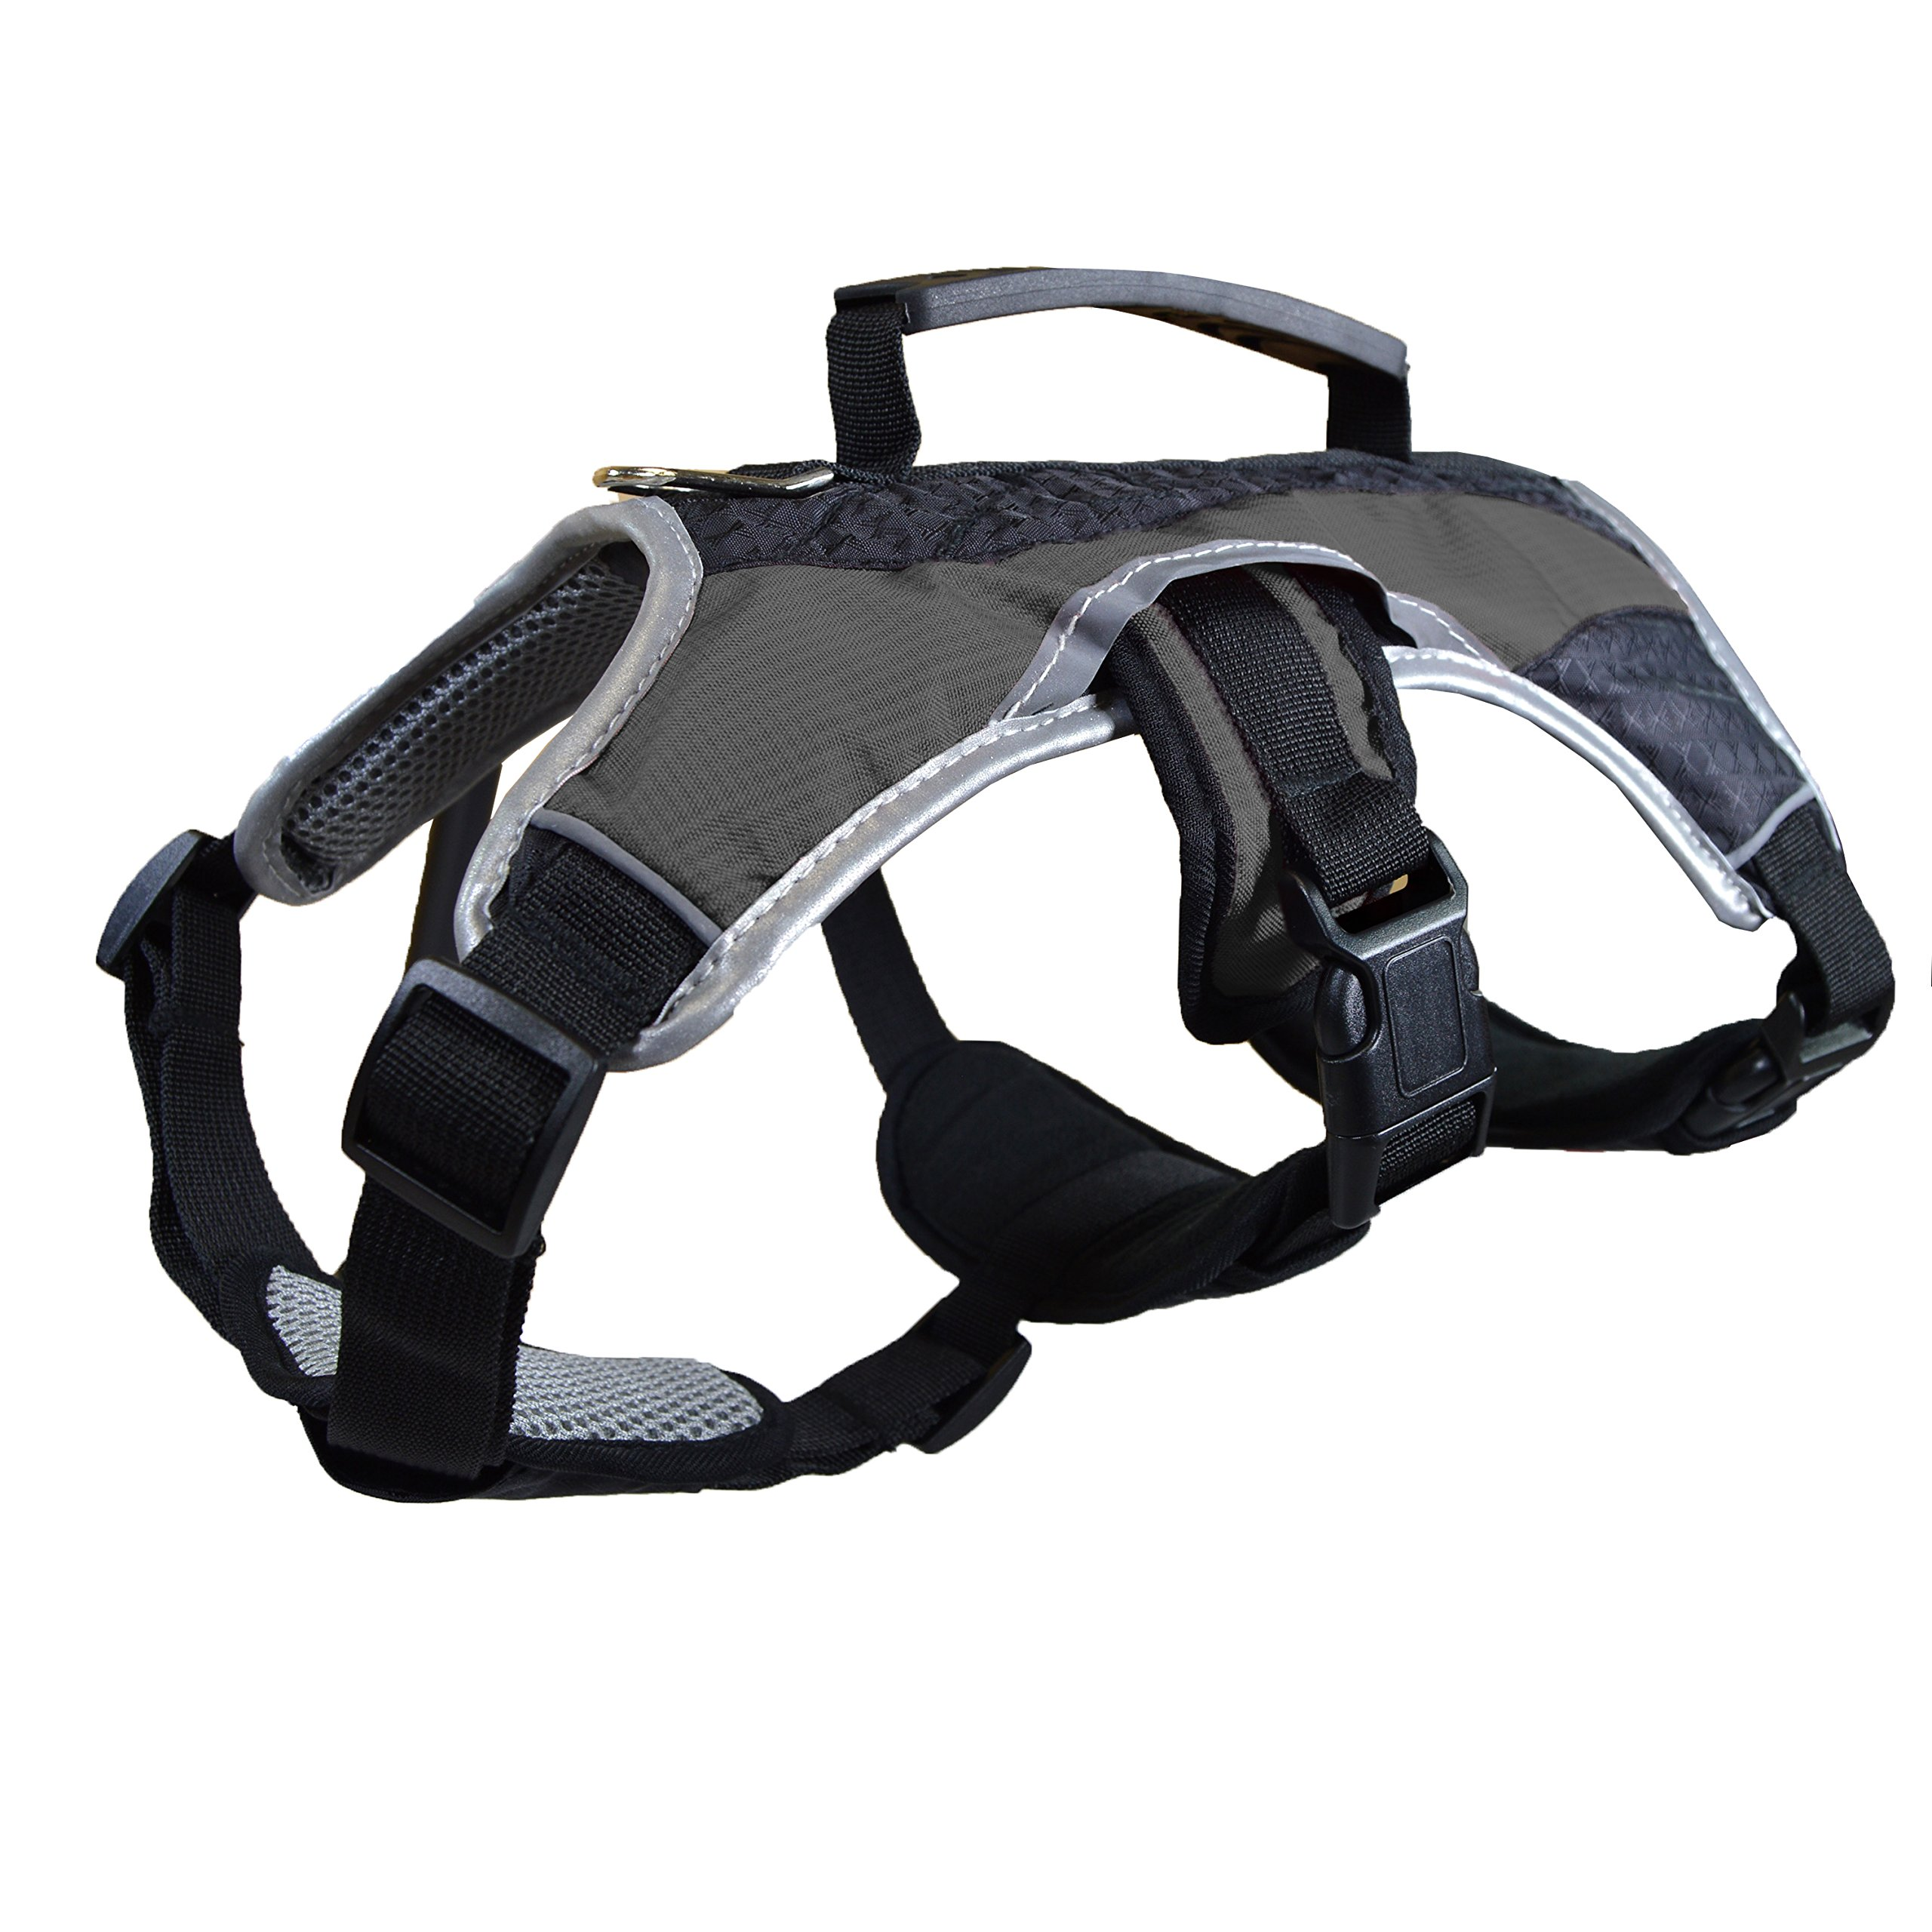 Dog Walking Lifting Carry Harness, Support Mesh Padded Vest, Accessory, Collar, Lightweight, No More Pulling, Tugging or Choking, for Puppies, Small Dogs (Black, X-Large), by Downtown Pet Supply